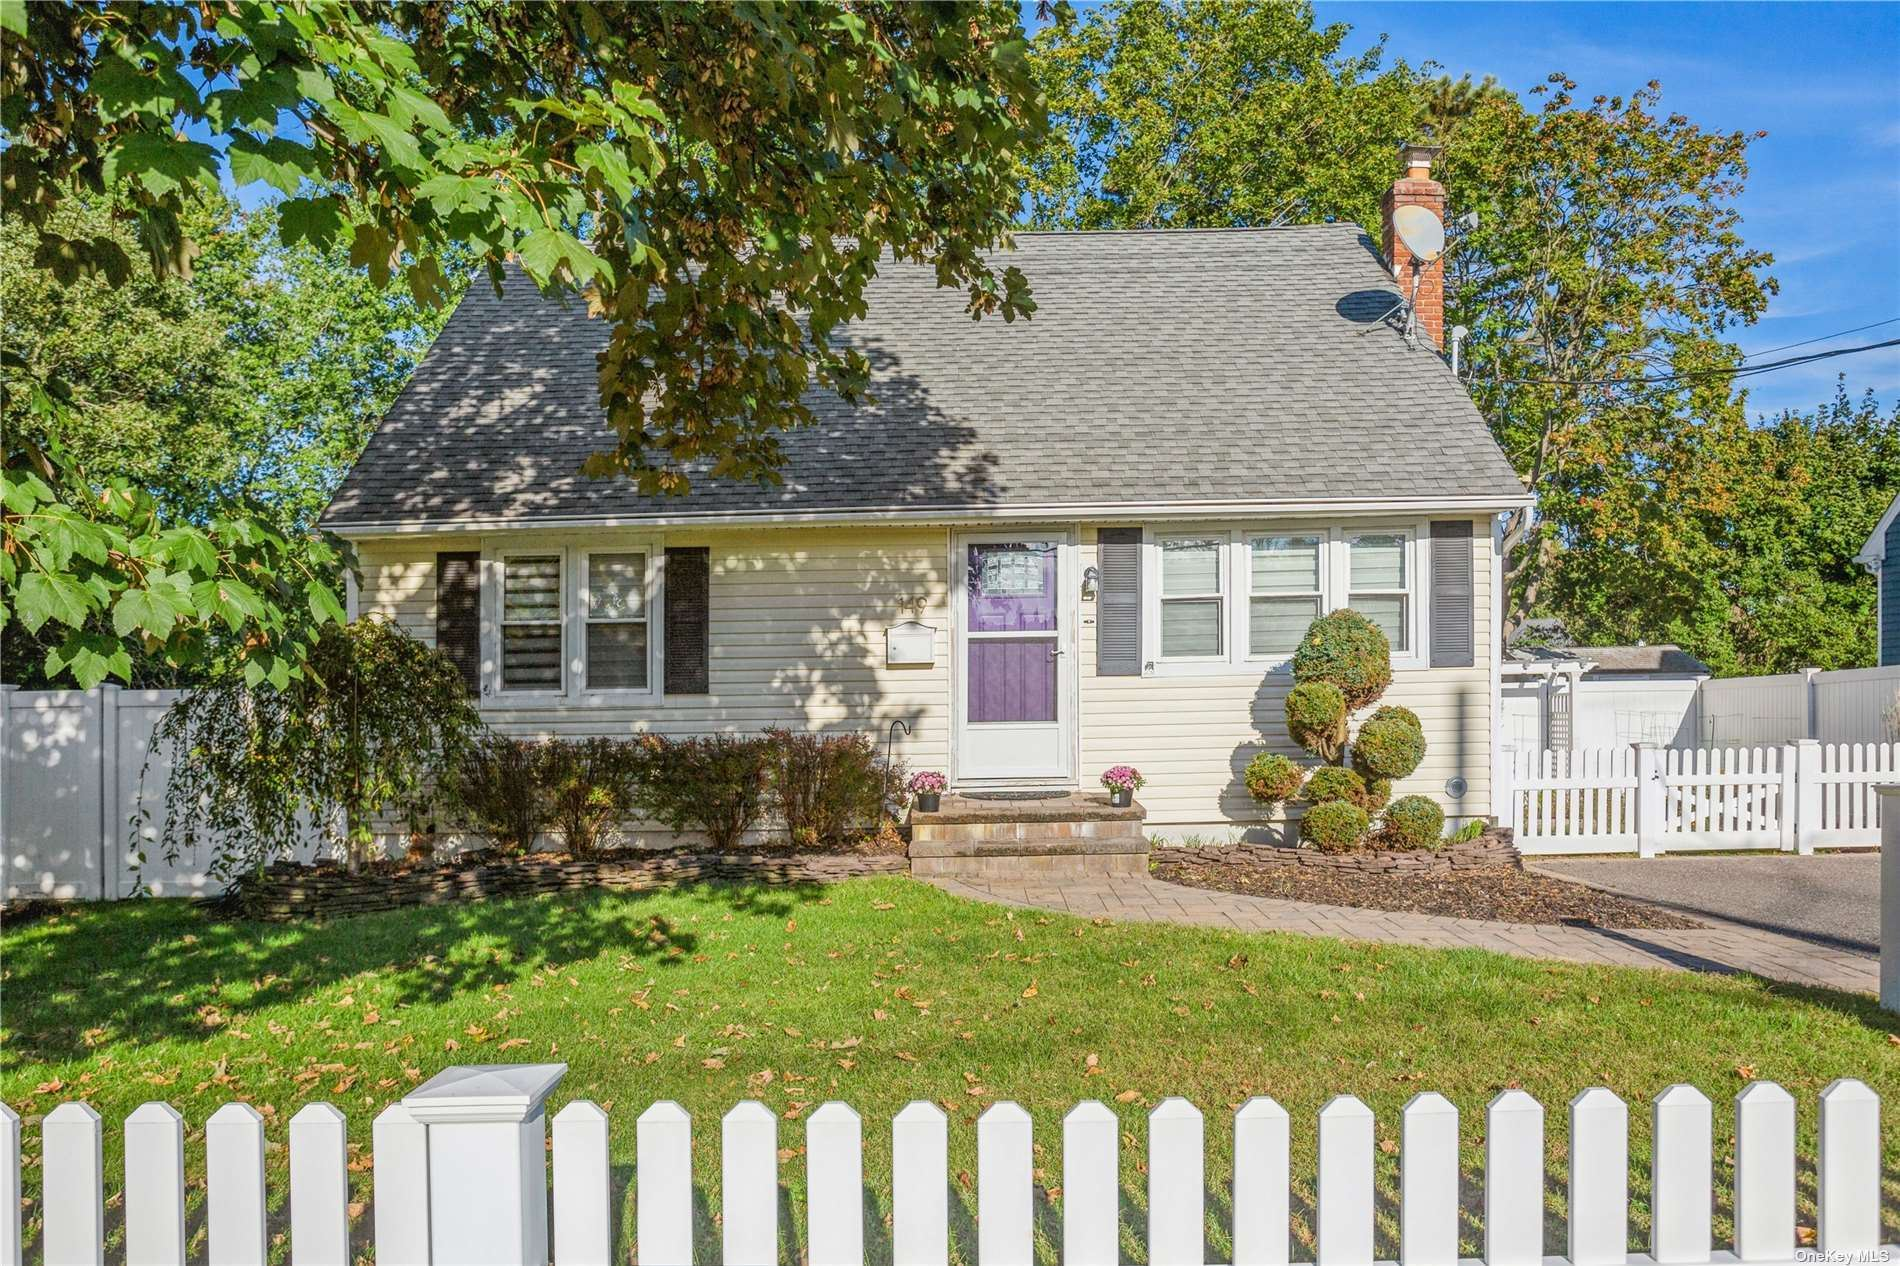 149 N Prospect Avenue, Patchogue, NY 11772 - MLS#: 3352063